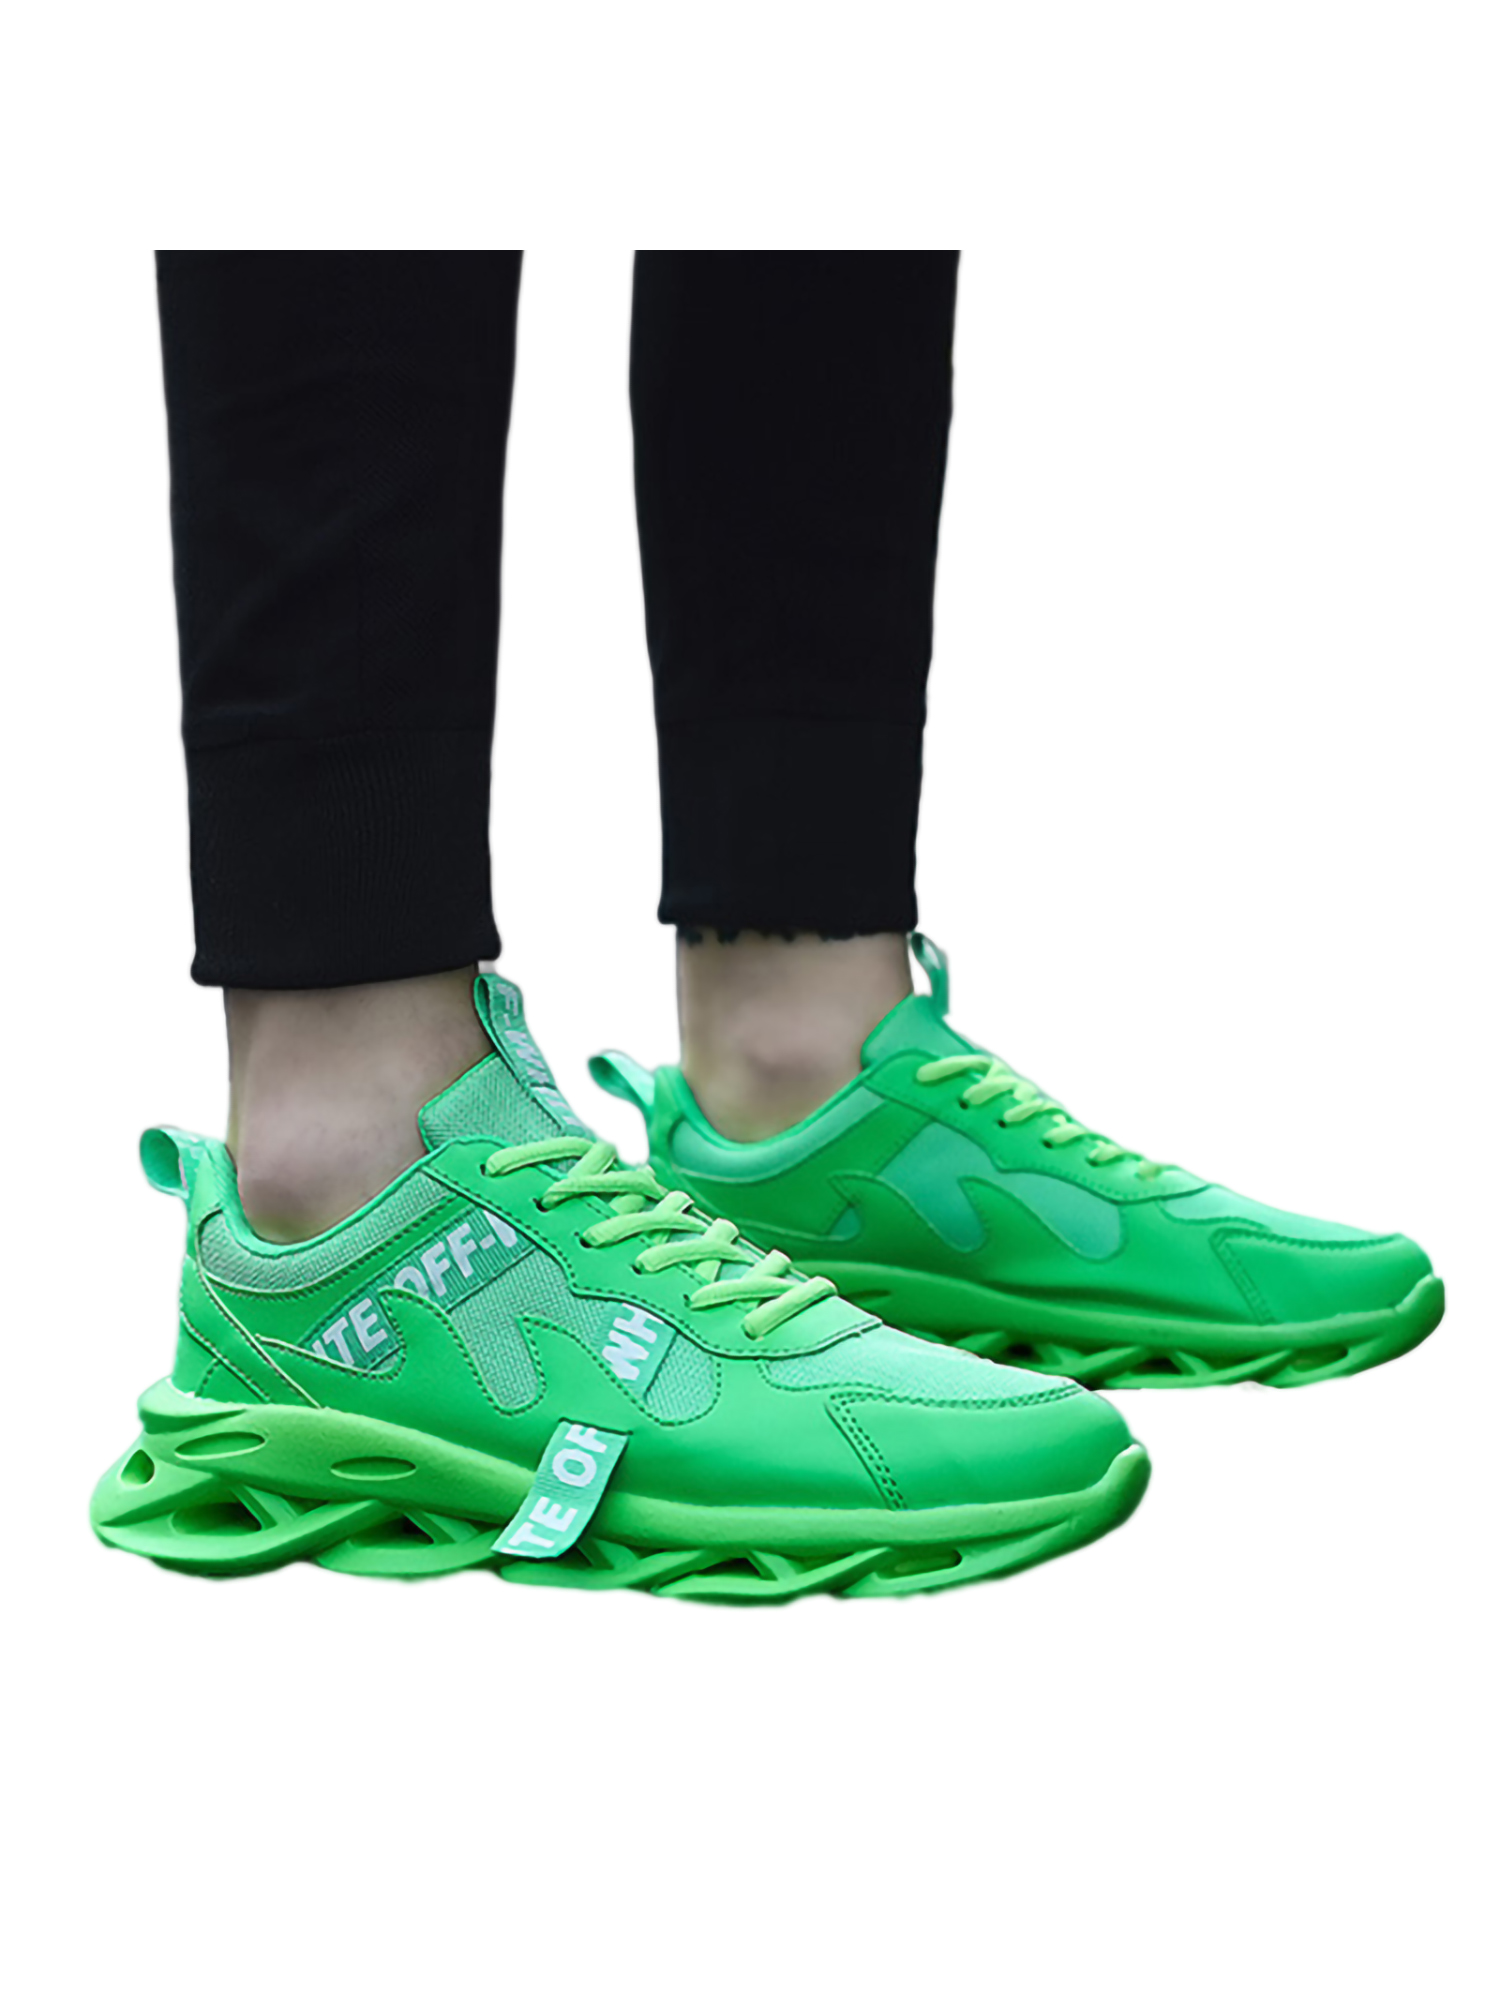 Mens Outdoor Running Lace Up Athletic Hiking Sport Low Top Sneakers Shoes New